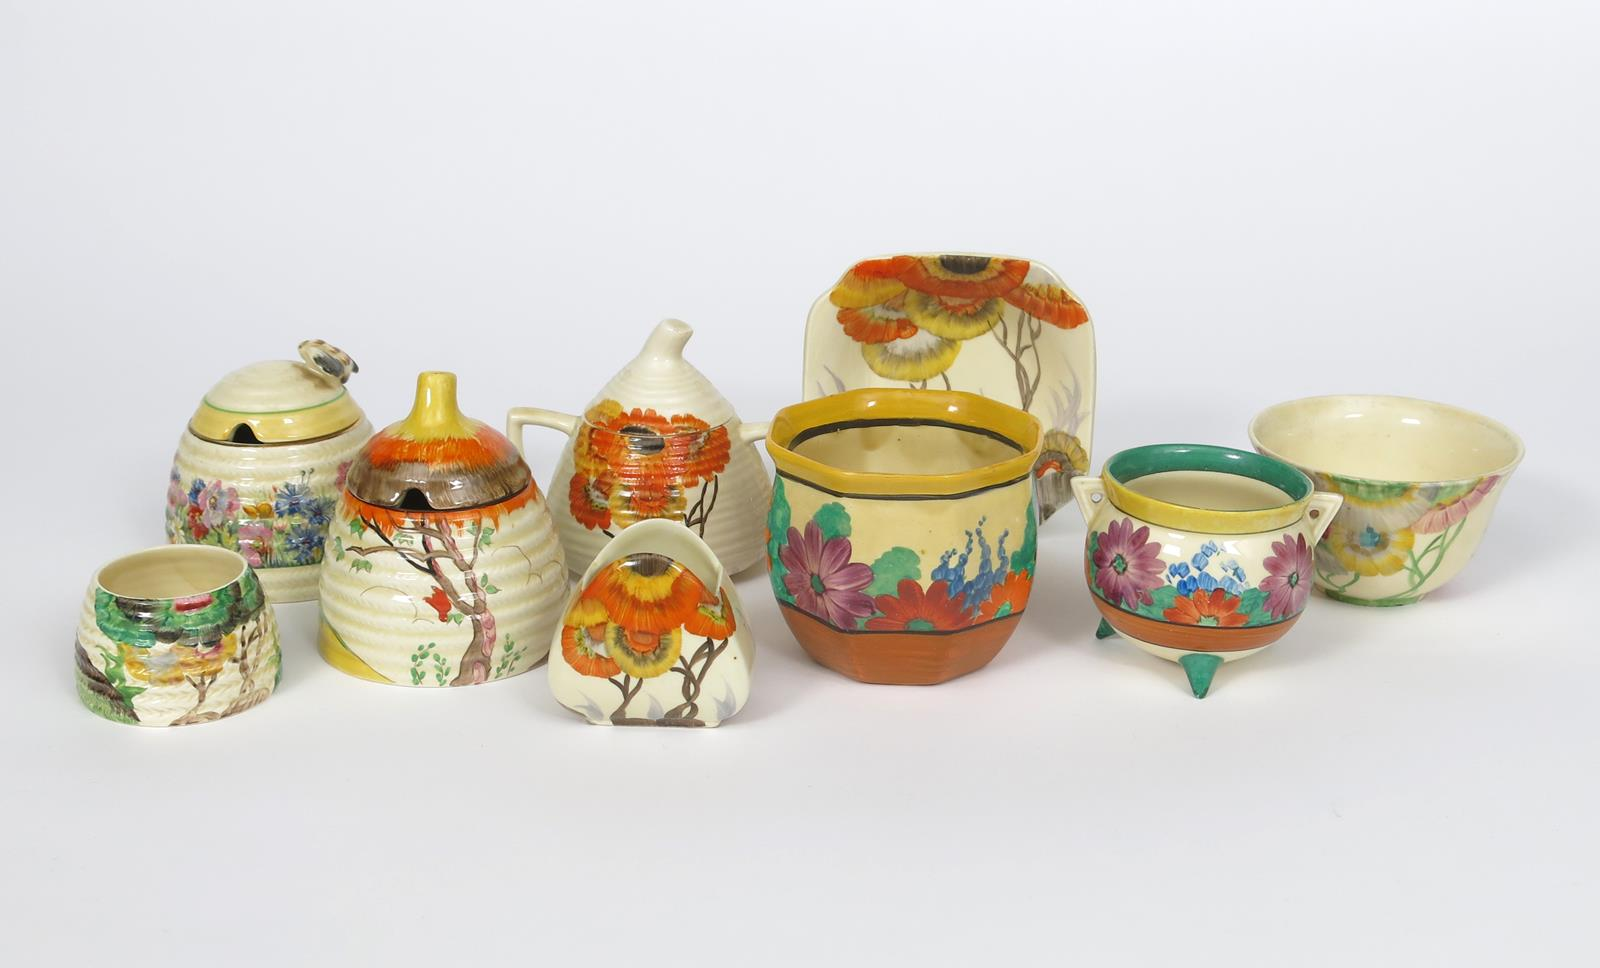 'Gay Day' a Clarice Cliff Bizarre Cauldron, painted in colours, a Gay Day Chester Fern pot, two